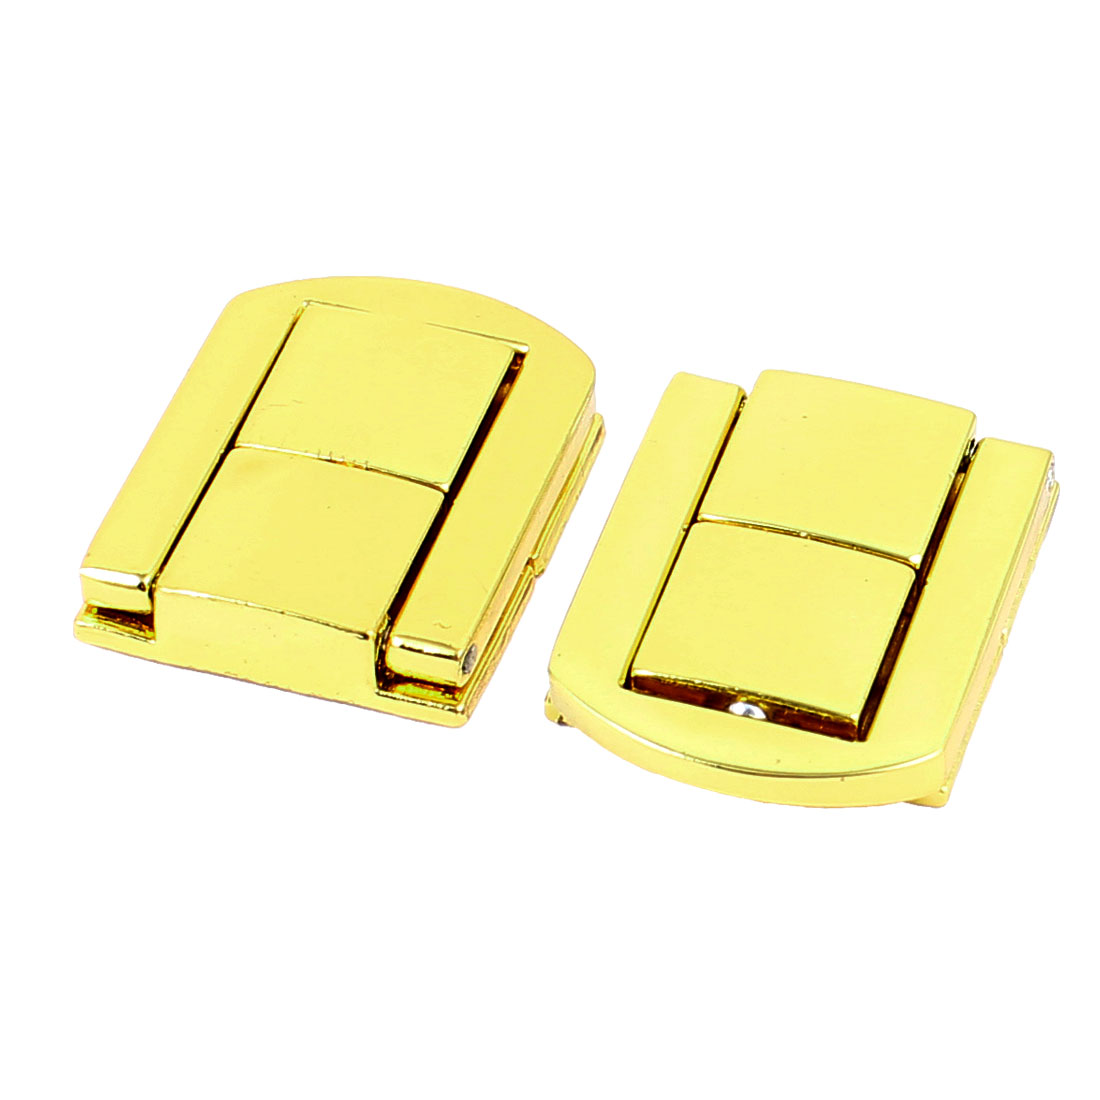 Jewelry Boxes Latch Gift Case Latches Small Box Hardware Gold Tone 2PCS